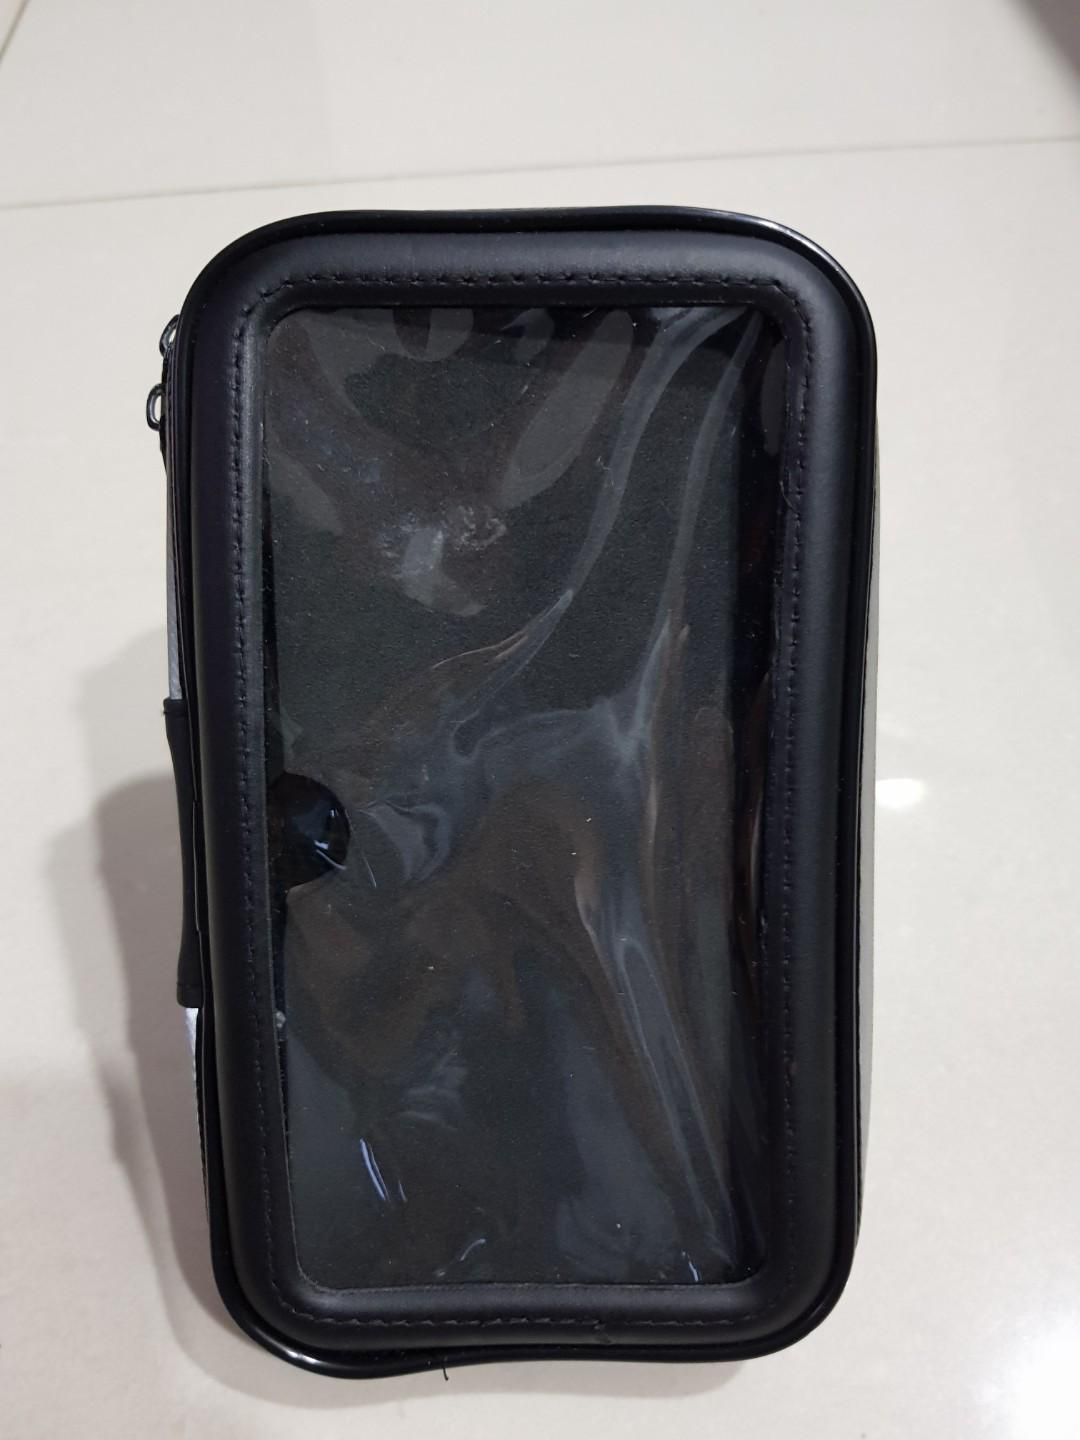 Waterproof HP GPS holder